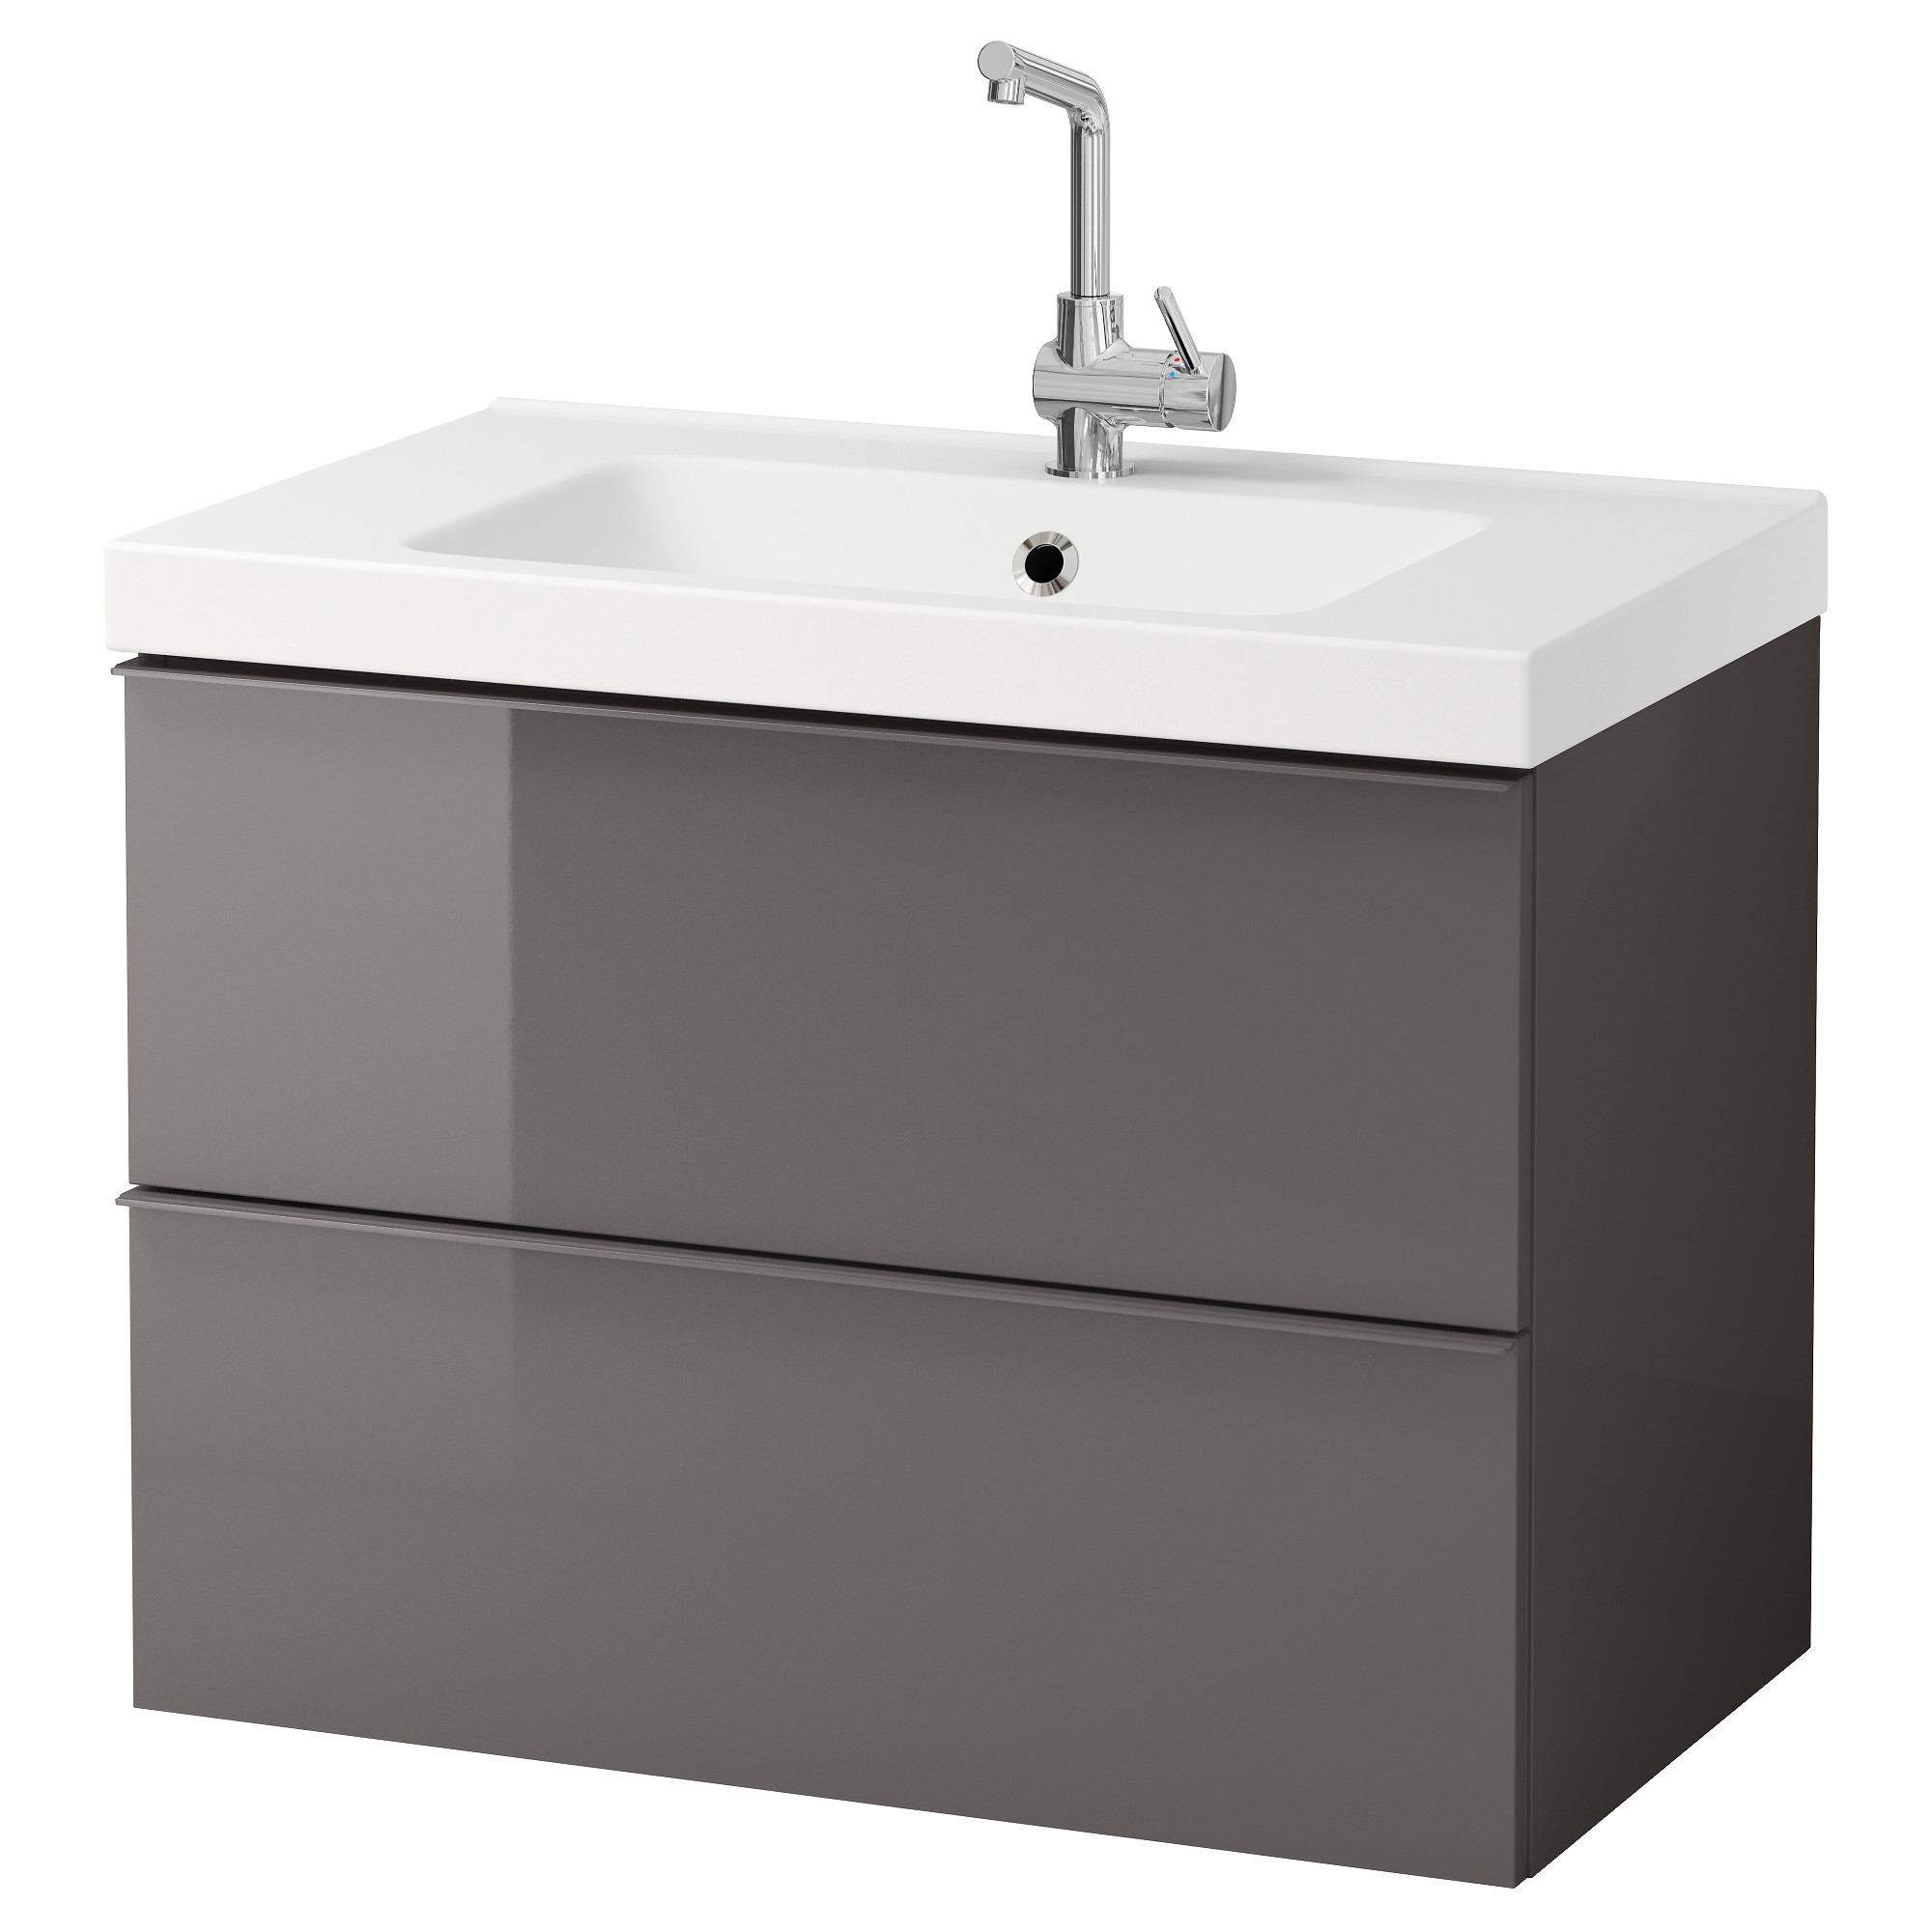 Ikea Bathroom Cabinet Vanity Unit